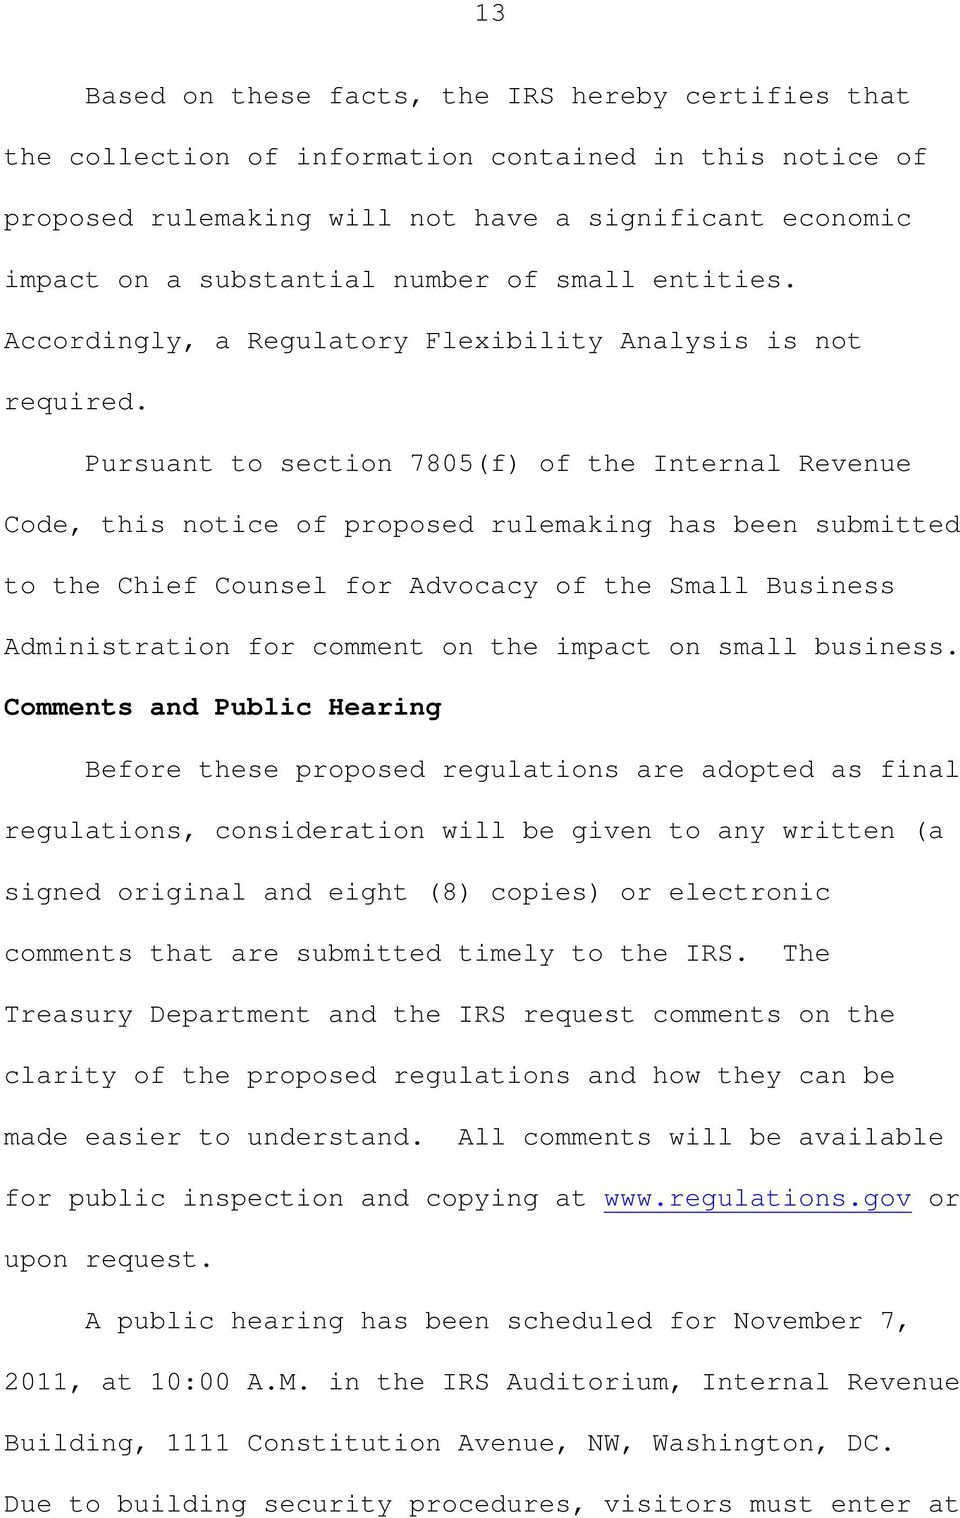 Pursuant to section 7805(f) of the Internal Revenue Code, this notice of proposed rulemaking has been submitted to the Chief Counsel for Advocacy of the Small Business Administration for comment on